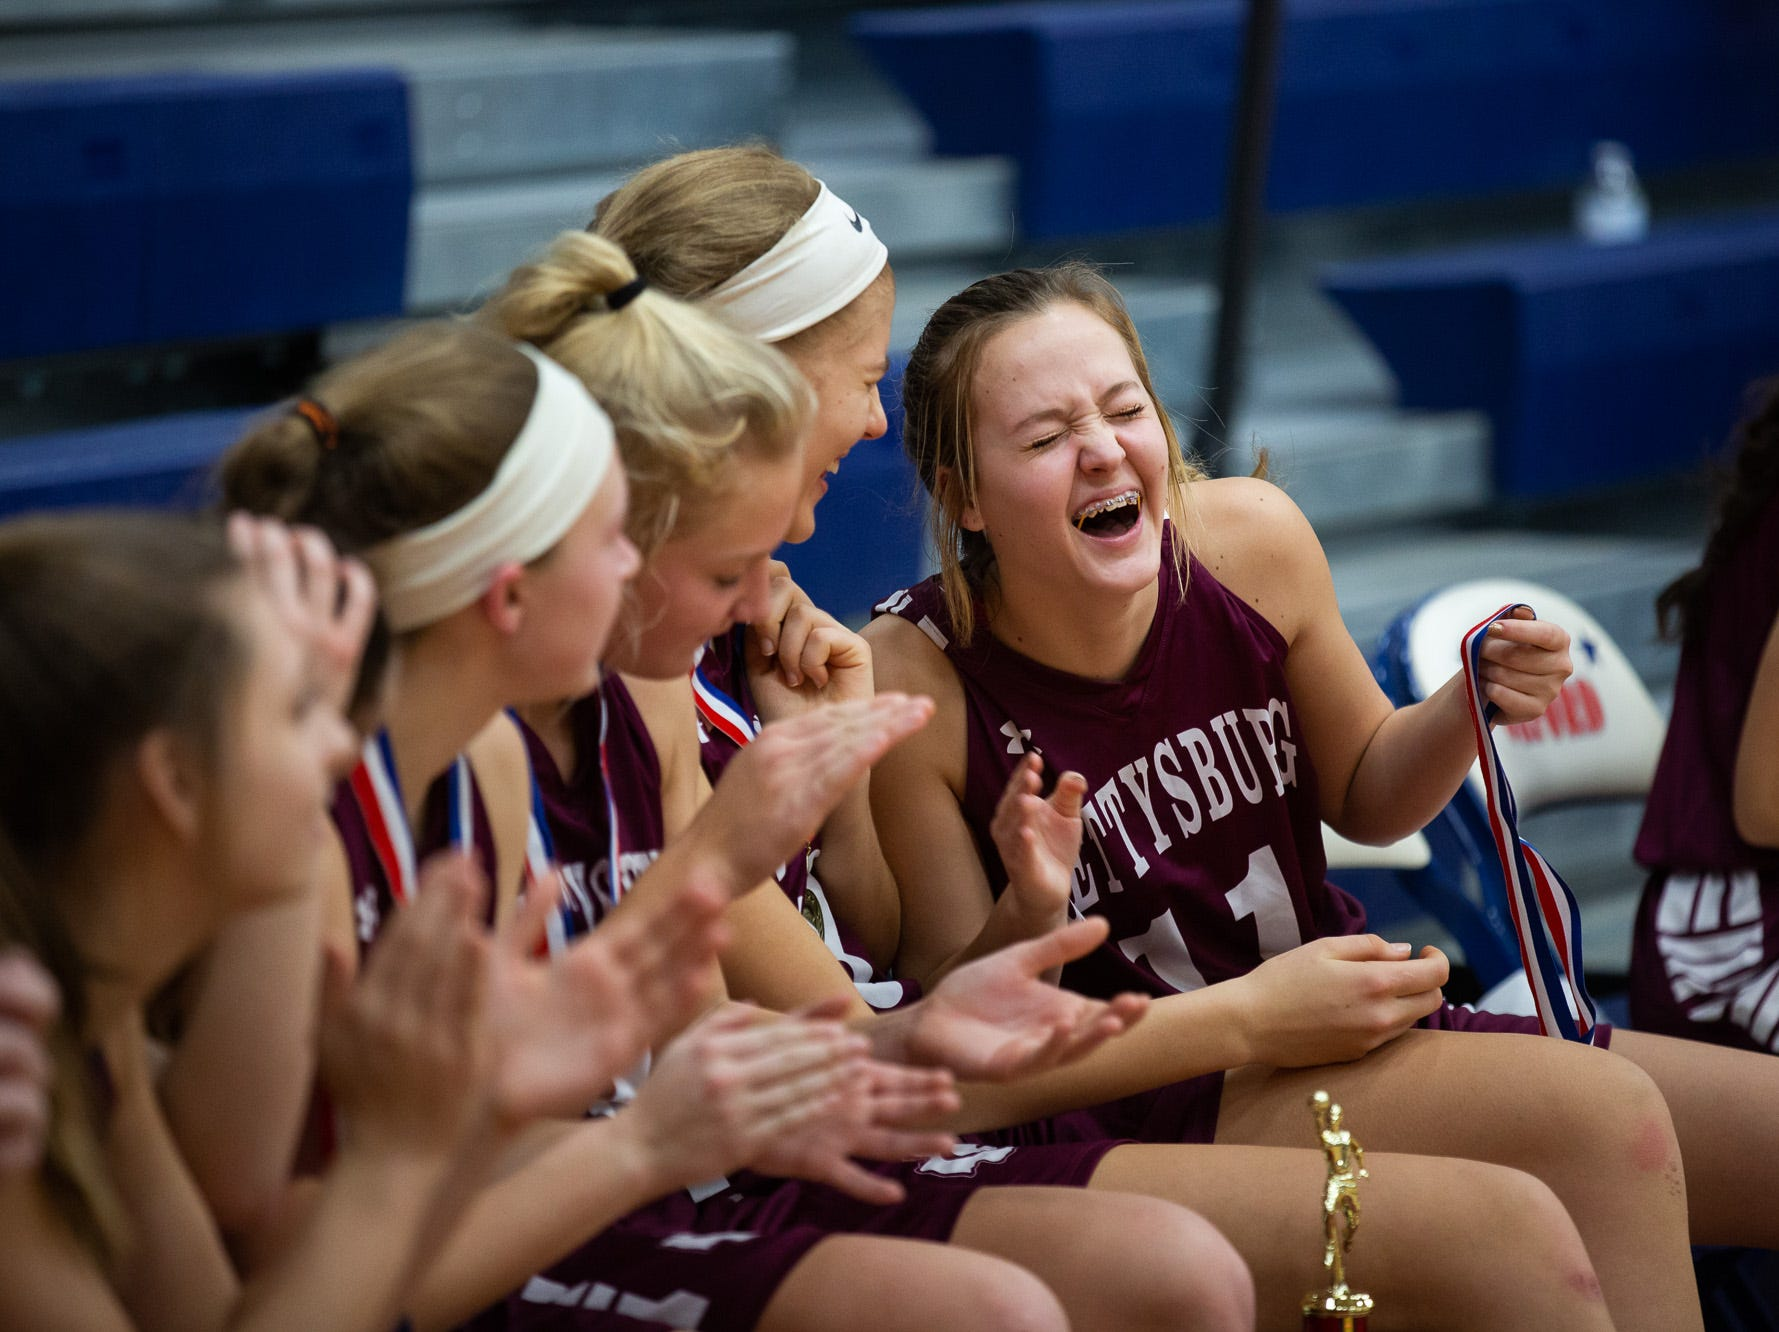 Gettysburg's Grace Witt (11) laughs with teammates after winning the championship game between New Oxford and Gettysburg at the New Oxford Girls Basketball Tip-Off Tournament, Saturday, Dec. 8, 2018, in New Oxford. The Gettysburg Lady Warriors defeated the New Oxford Lady Colonials 47-40.